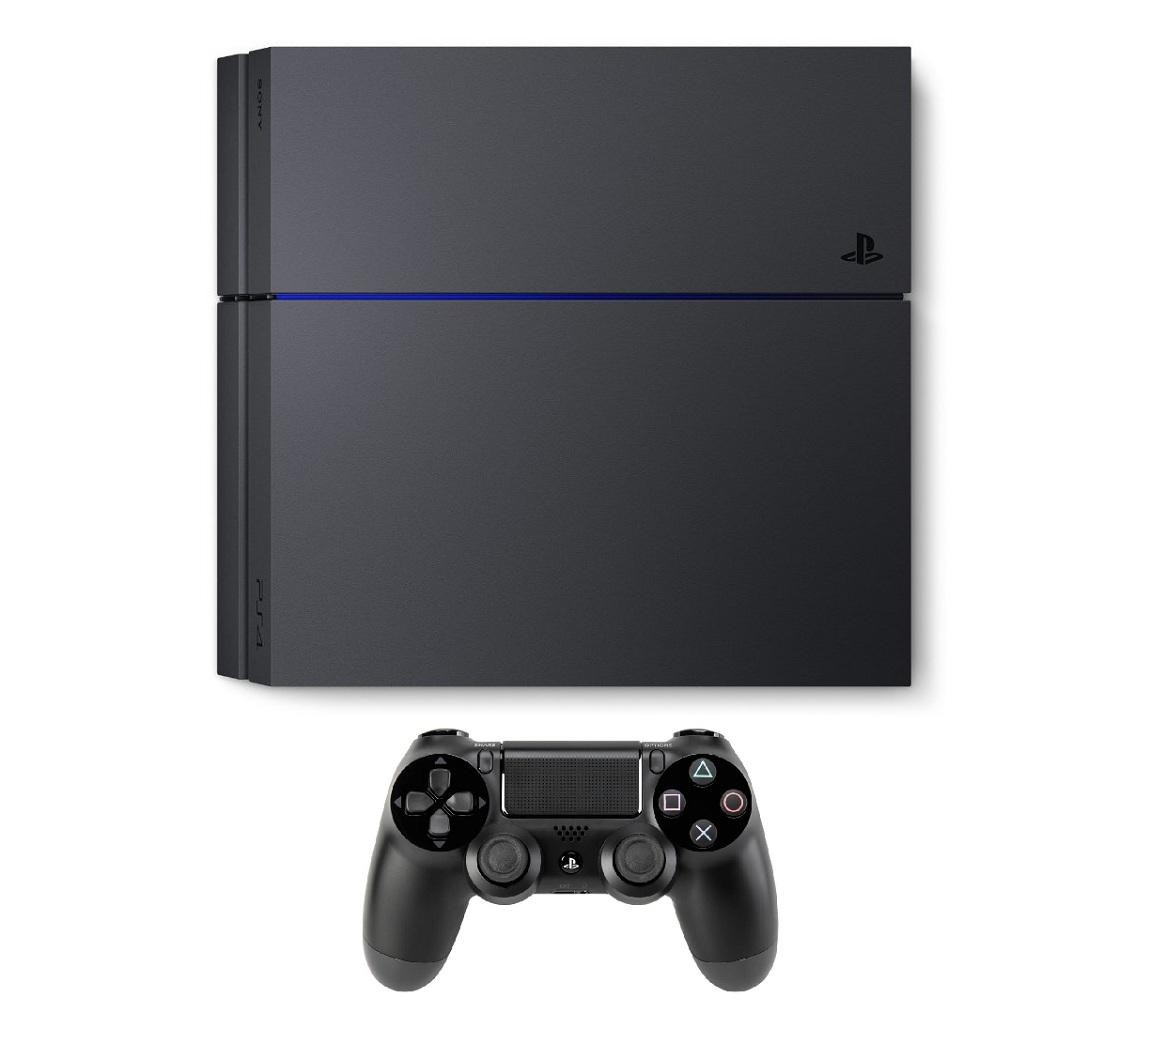 playstation4-cuh-1216a-black.jpg